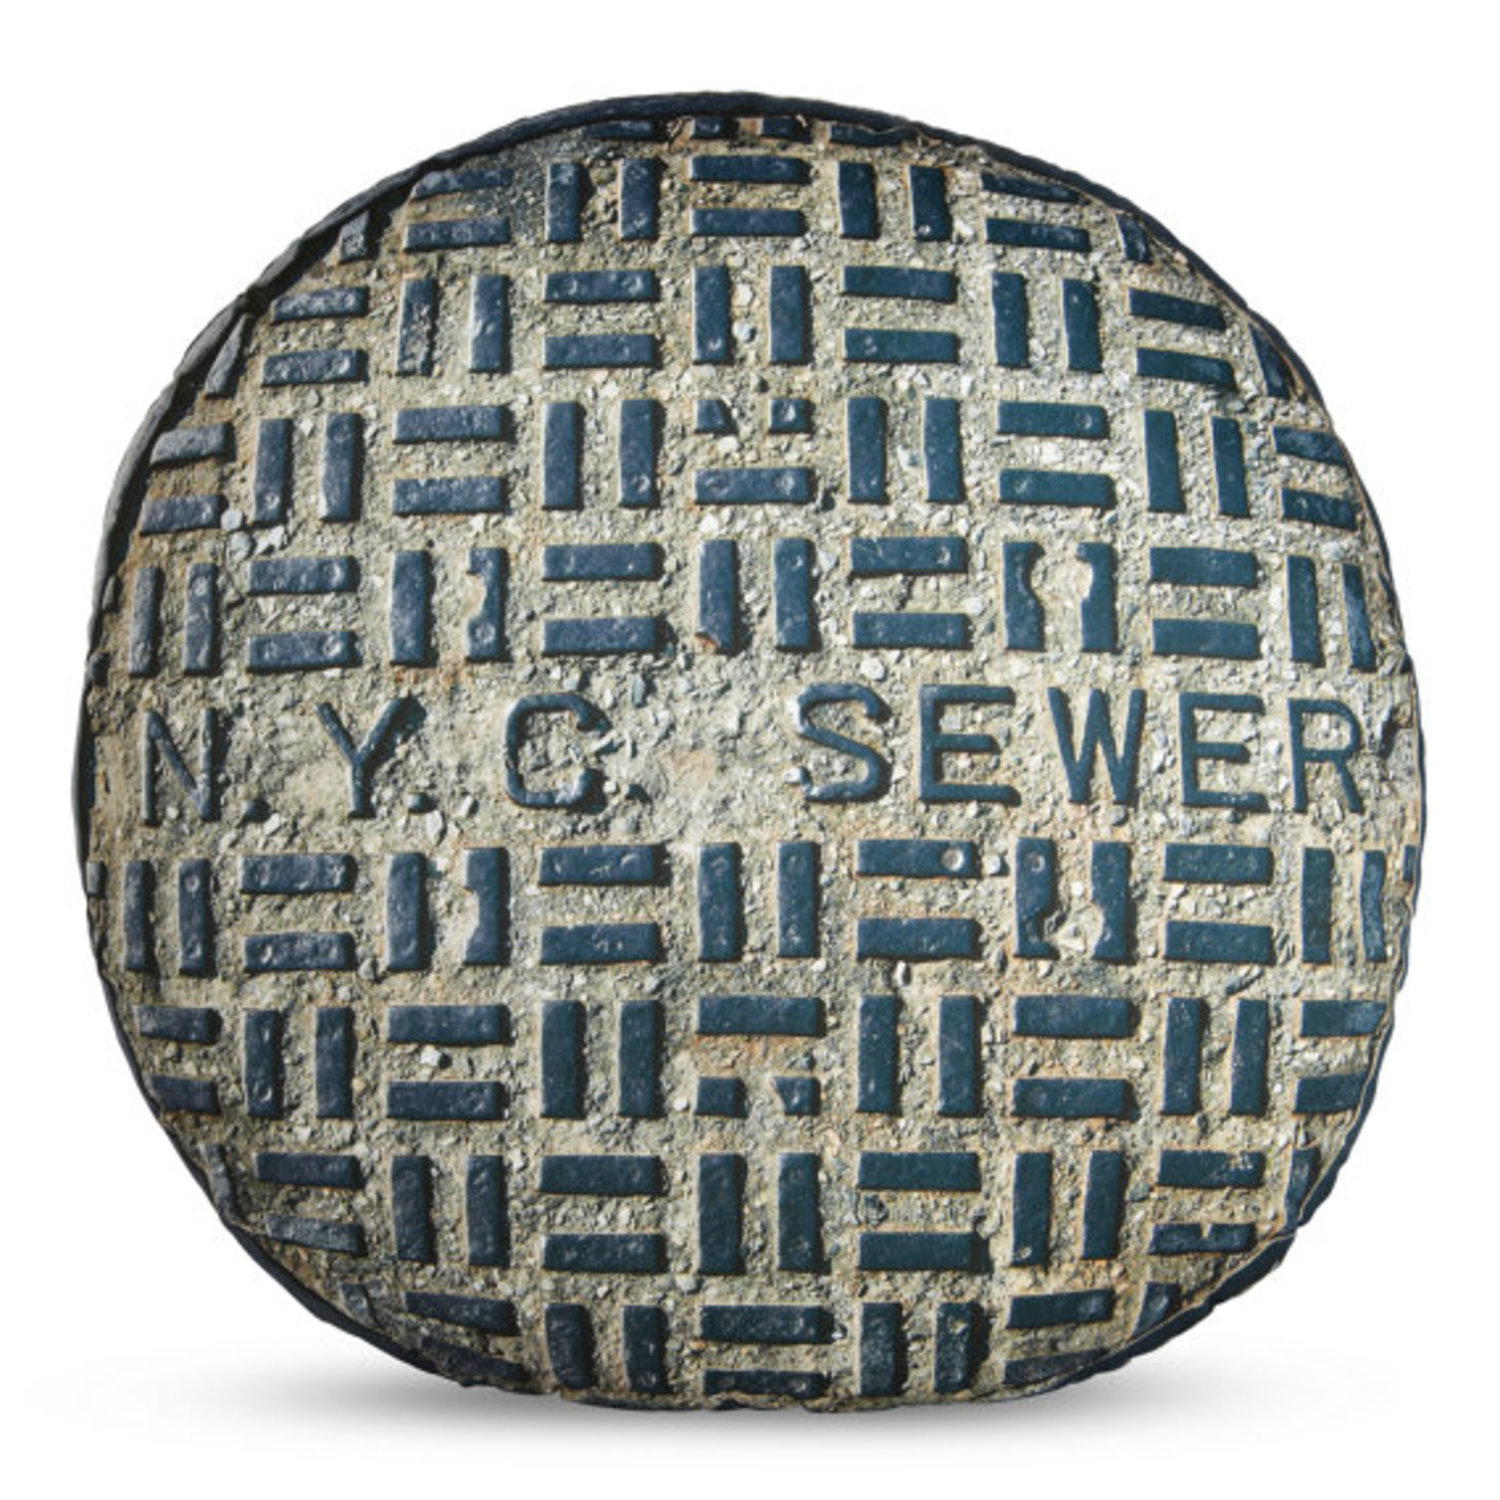 NYC Sewer Printed Pillow LARGE